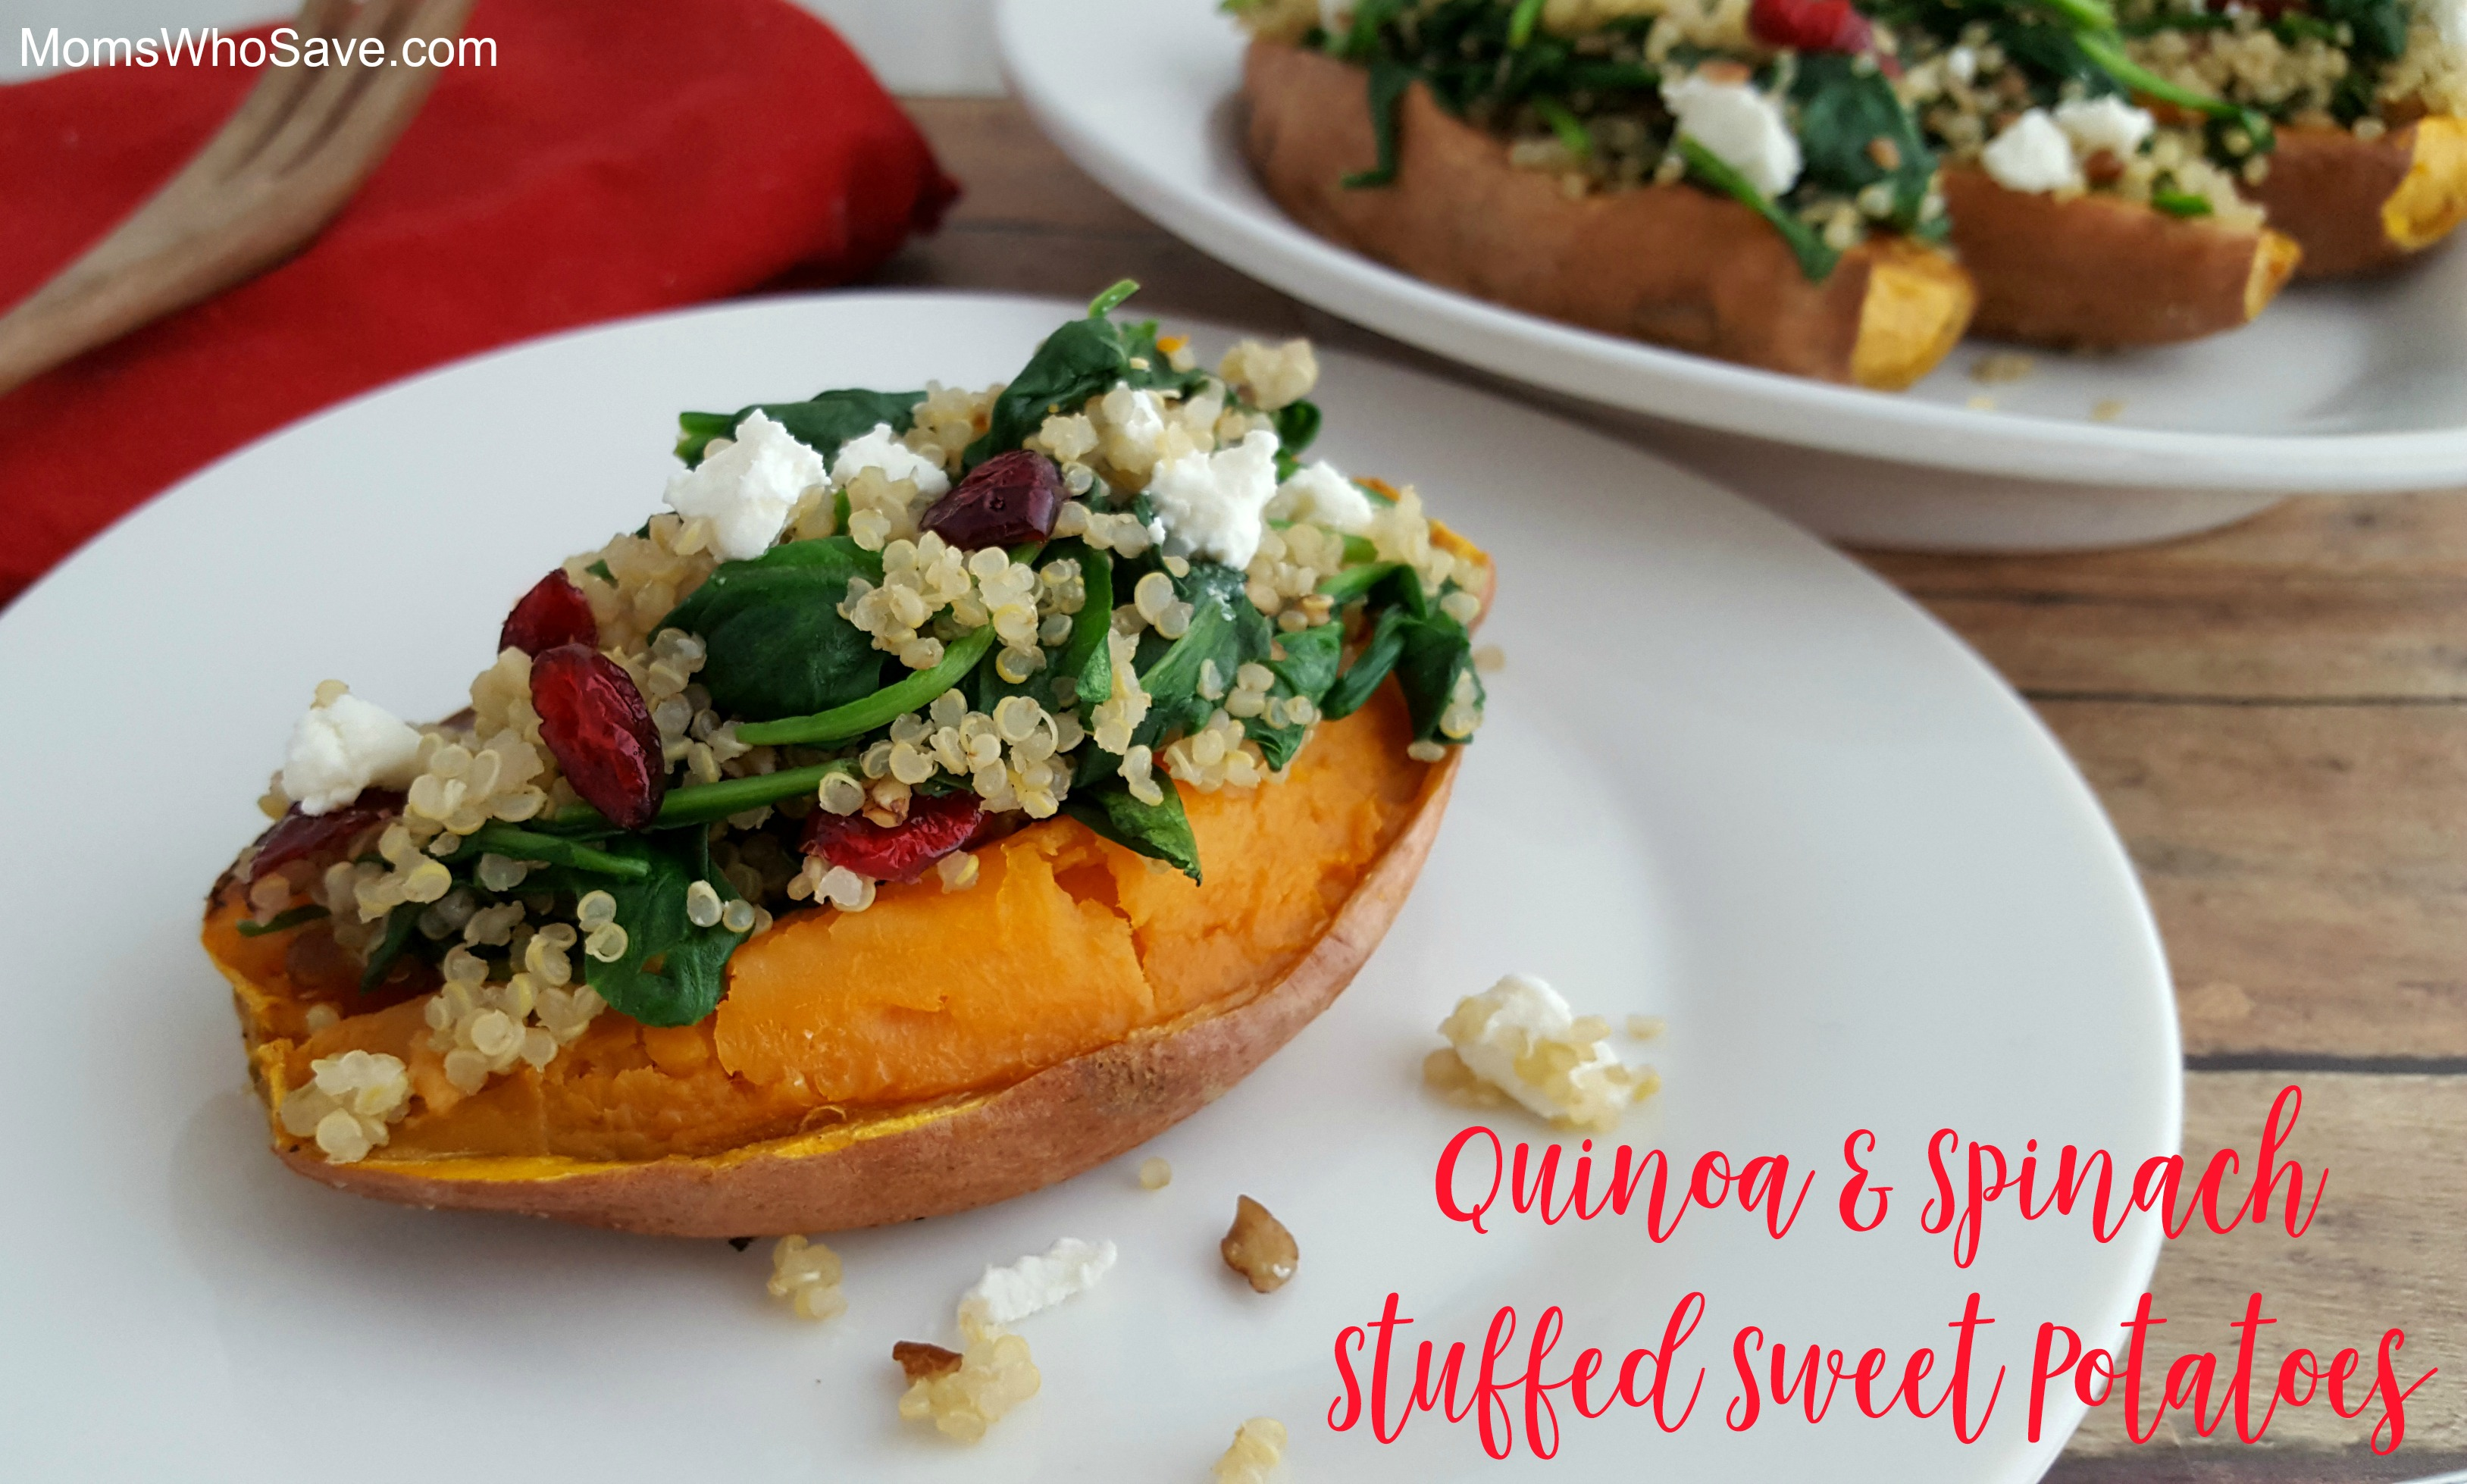 quinoa and sweet potatoes recipe